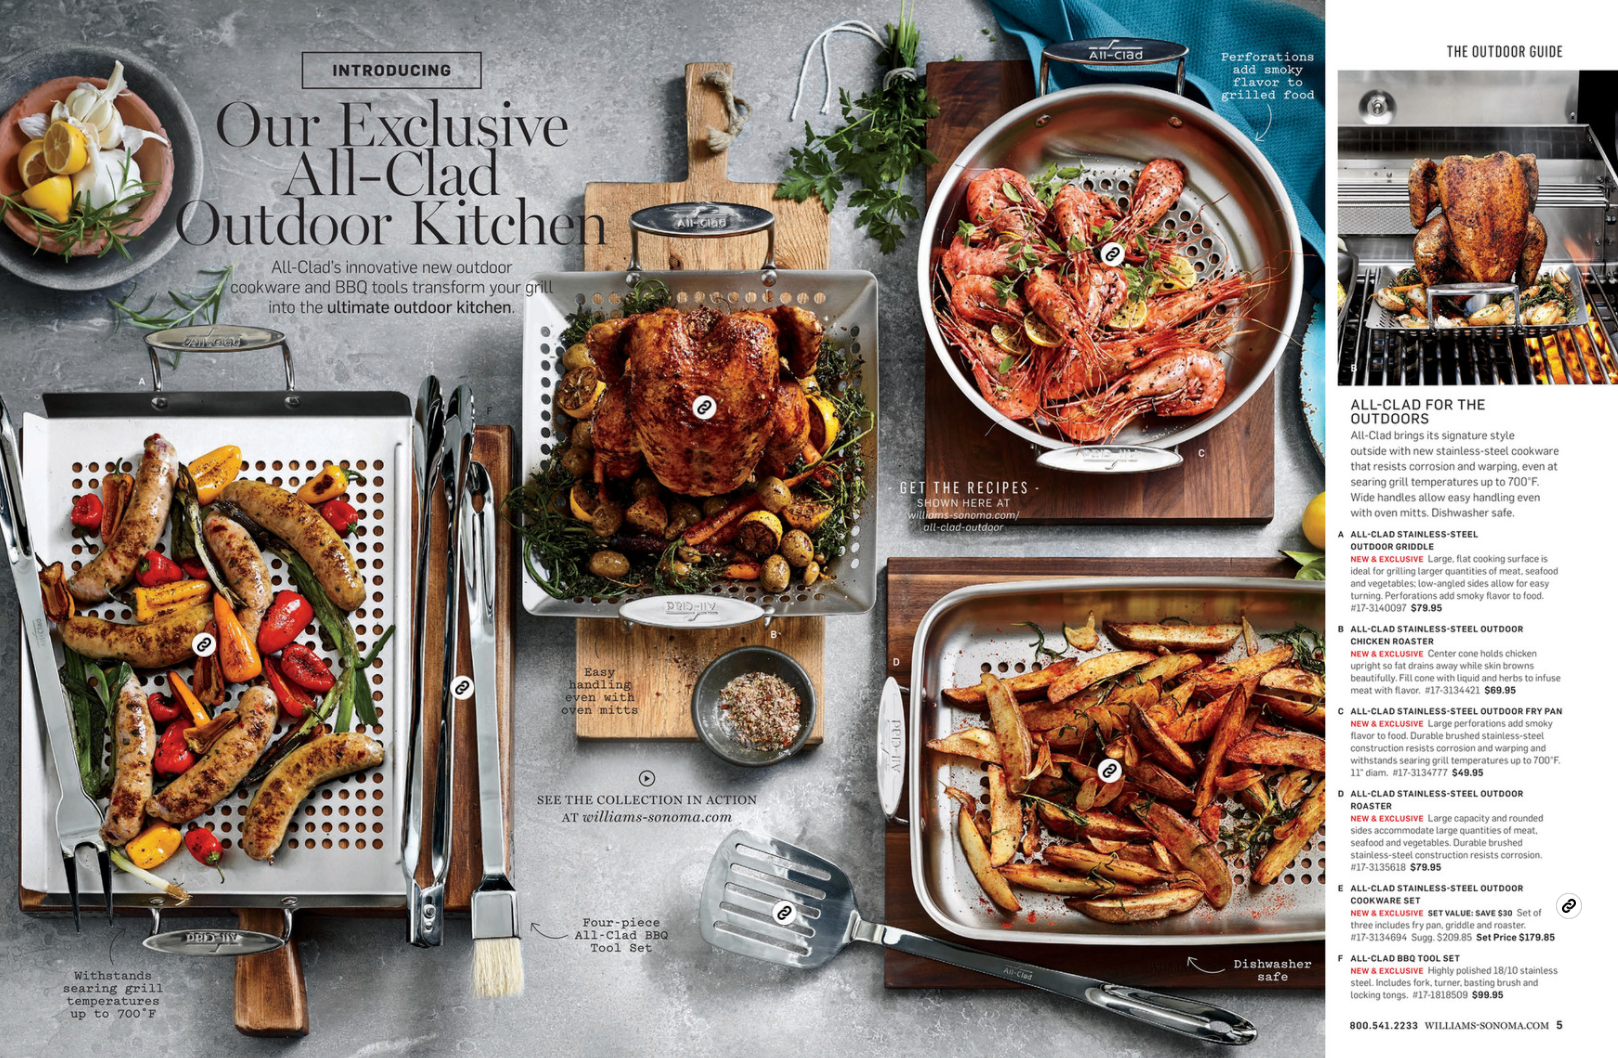 Photography: Anson Smart, Food Styling: George Dolese, Prop & Set Styling: Marcus Hay for SMH, Inc